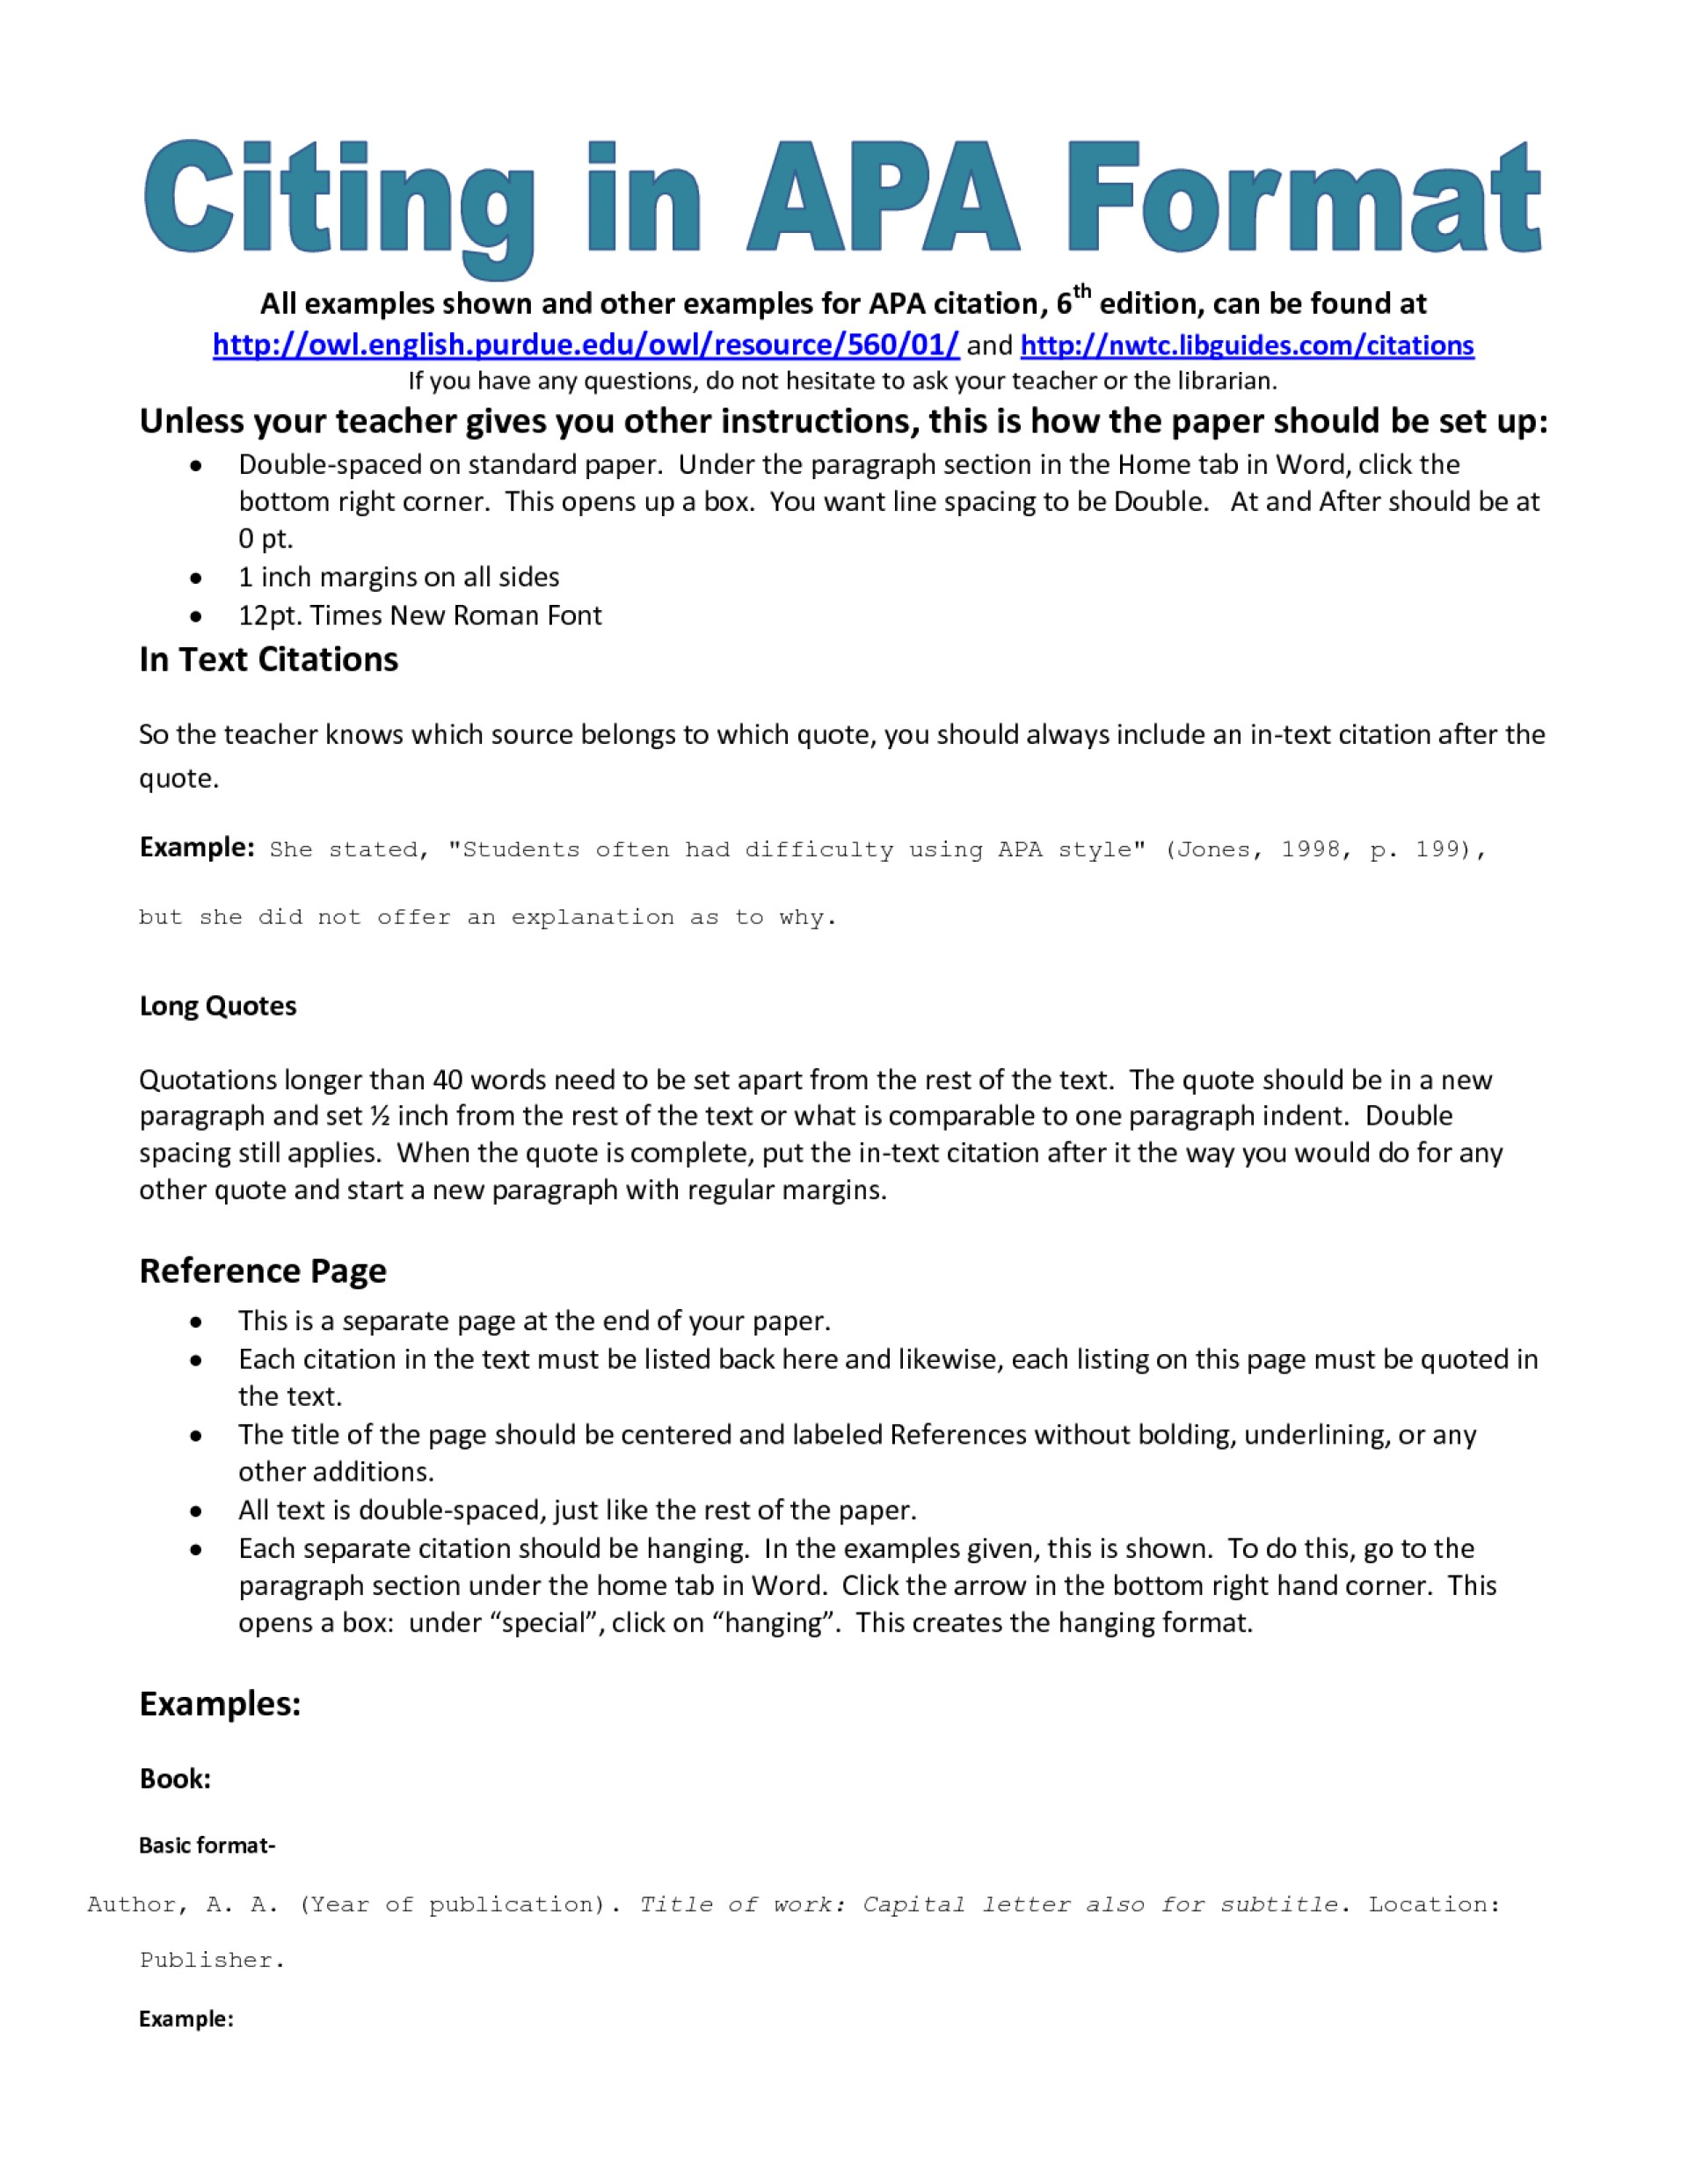 001 Essay Example How To Cite An Stunning Apa In A Book Style Article Quote Sources Format 1920